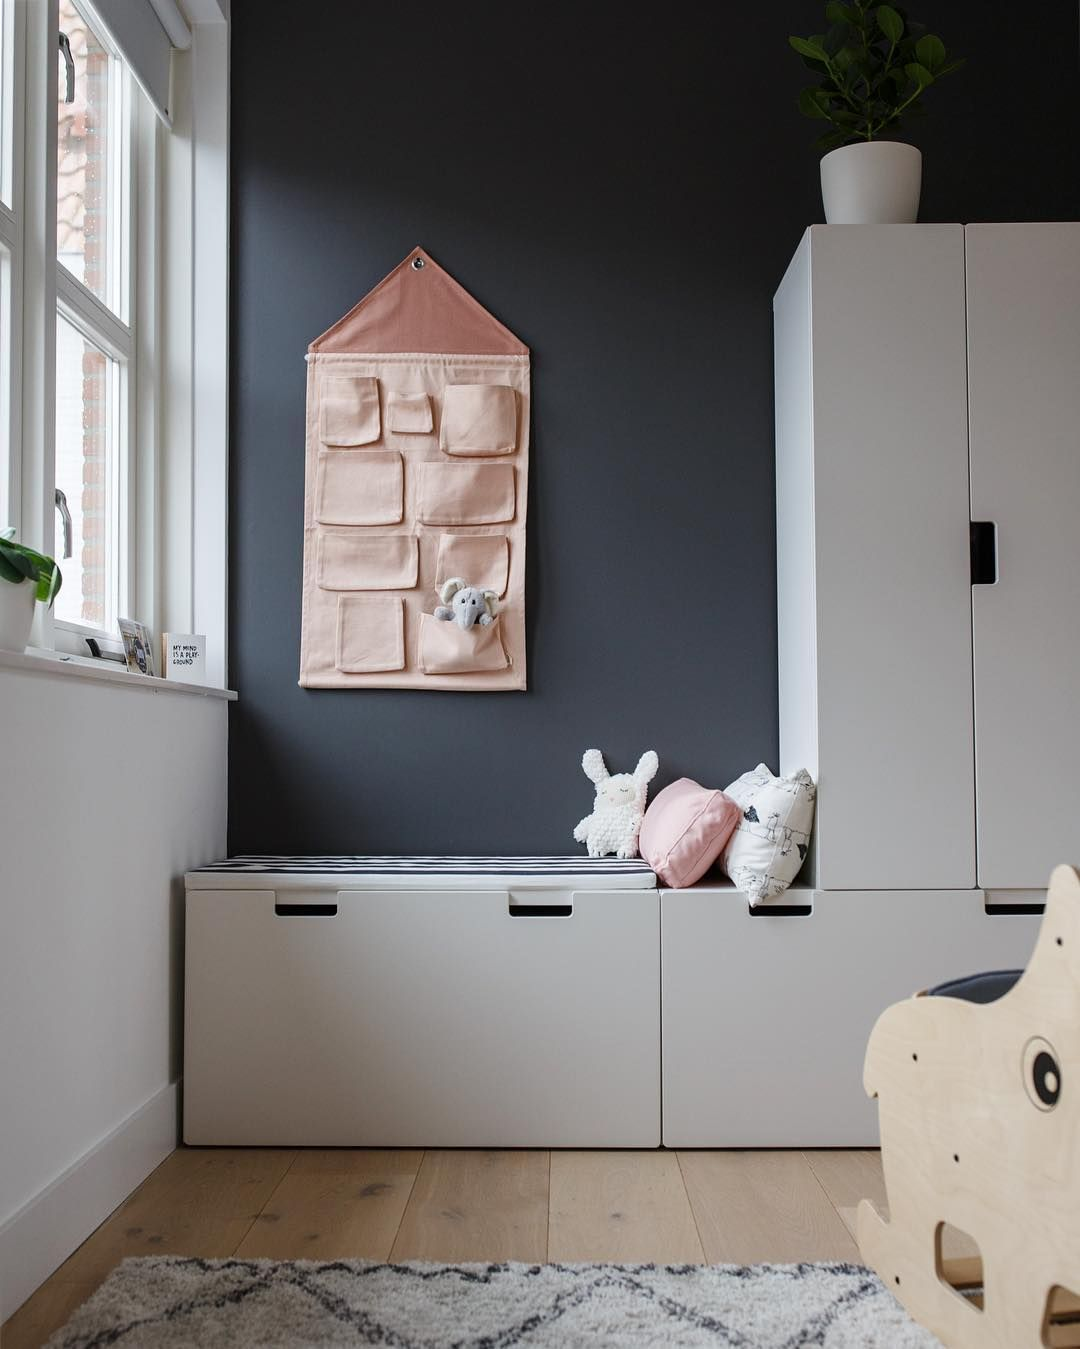 ferm LIVING Kids House wall storage: https://www.fermliving.com